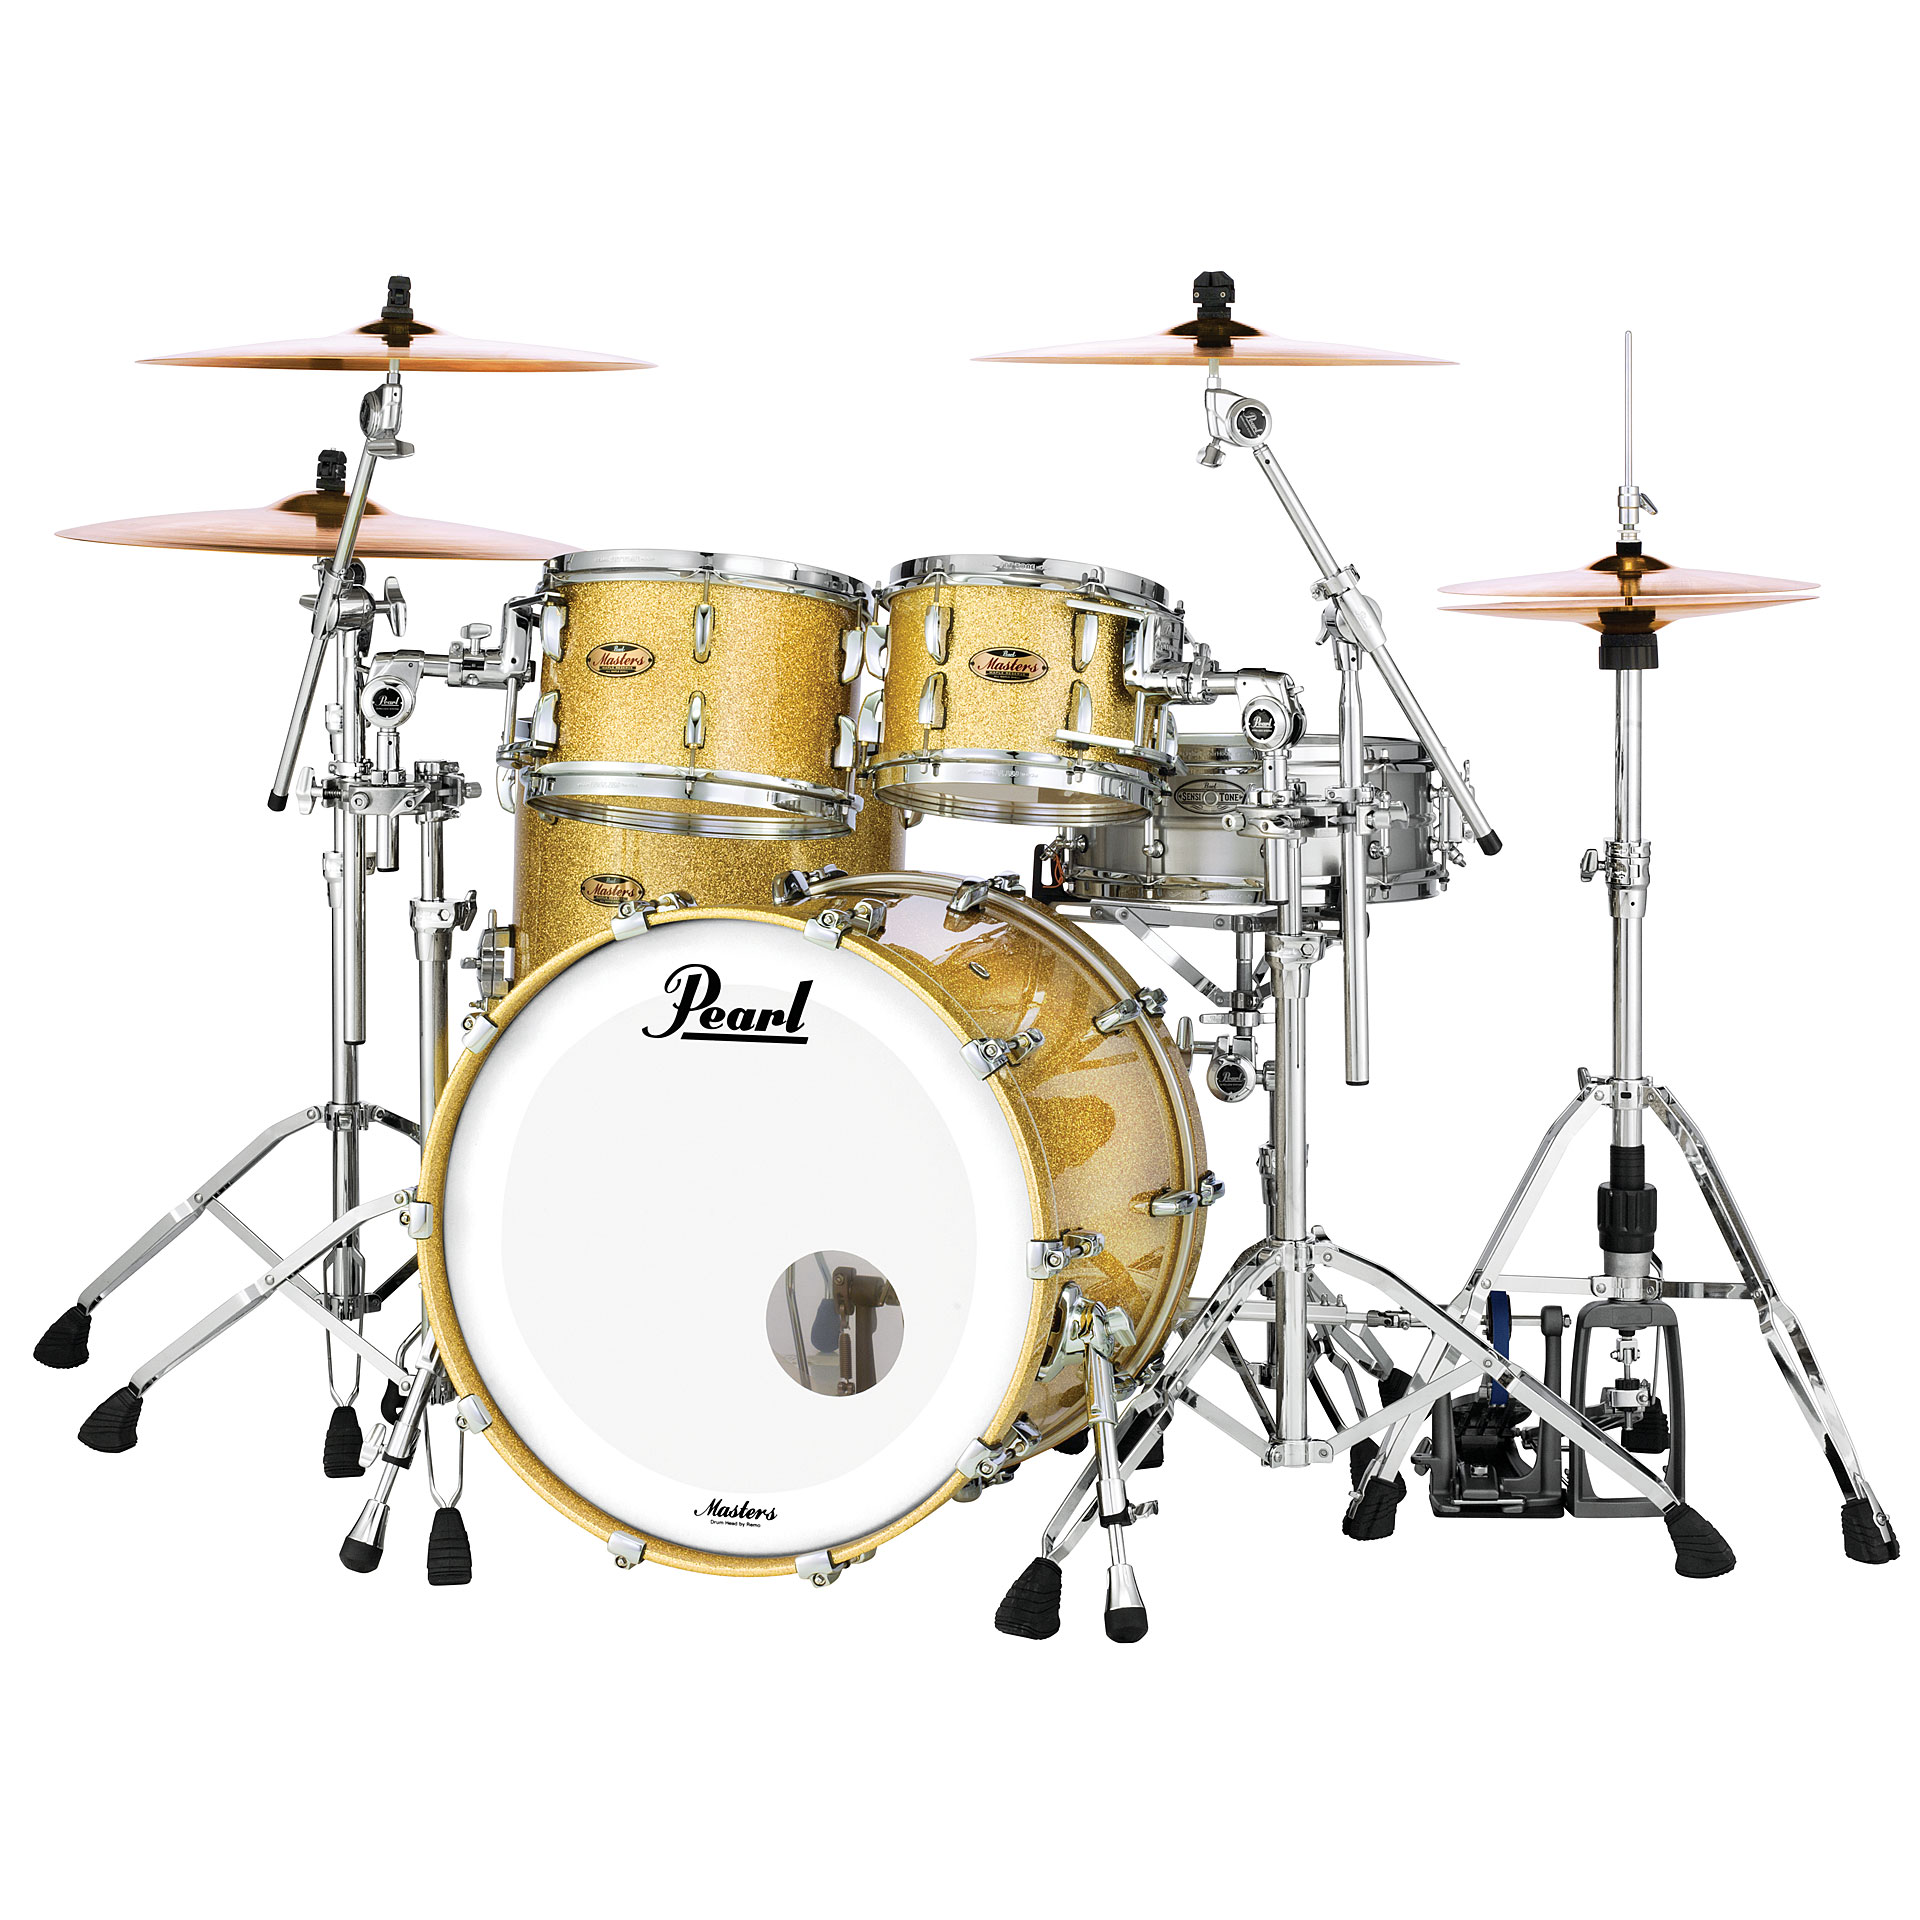 Erfahrung Synonym Pearl Masters Maple Reserve Mrv904xep C347 Schlagzeug